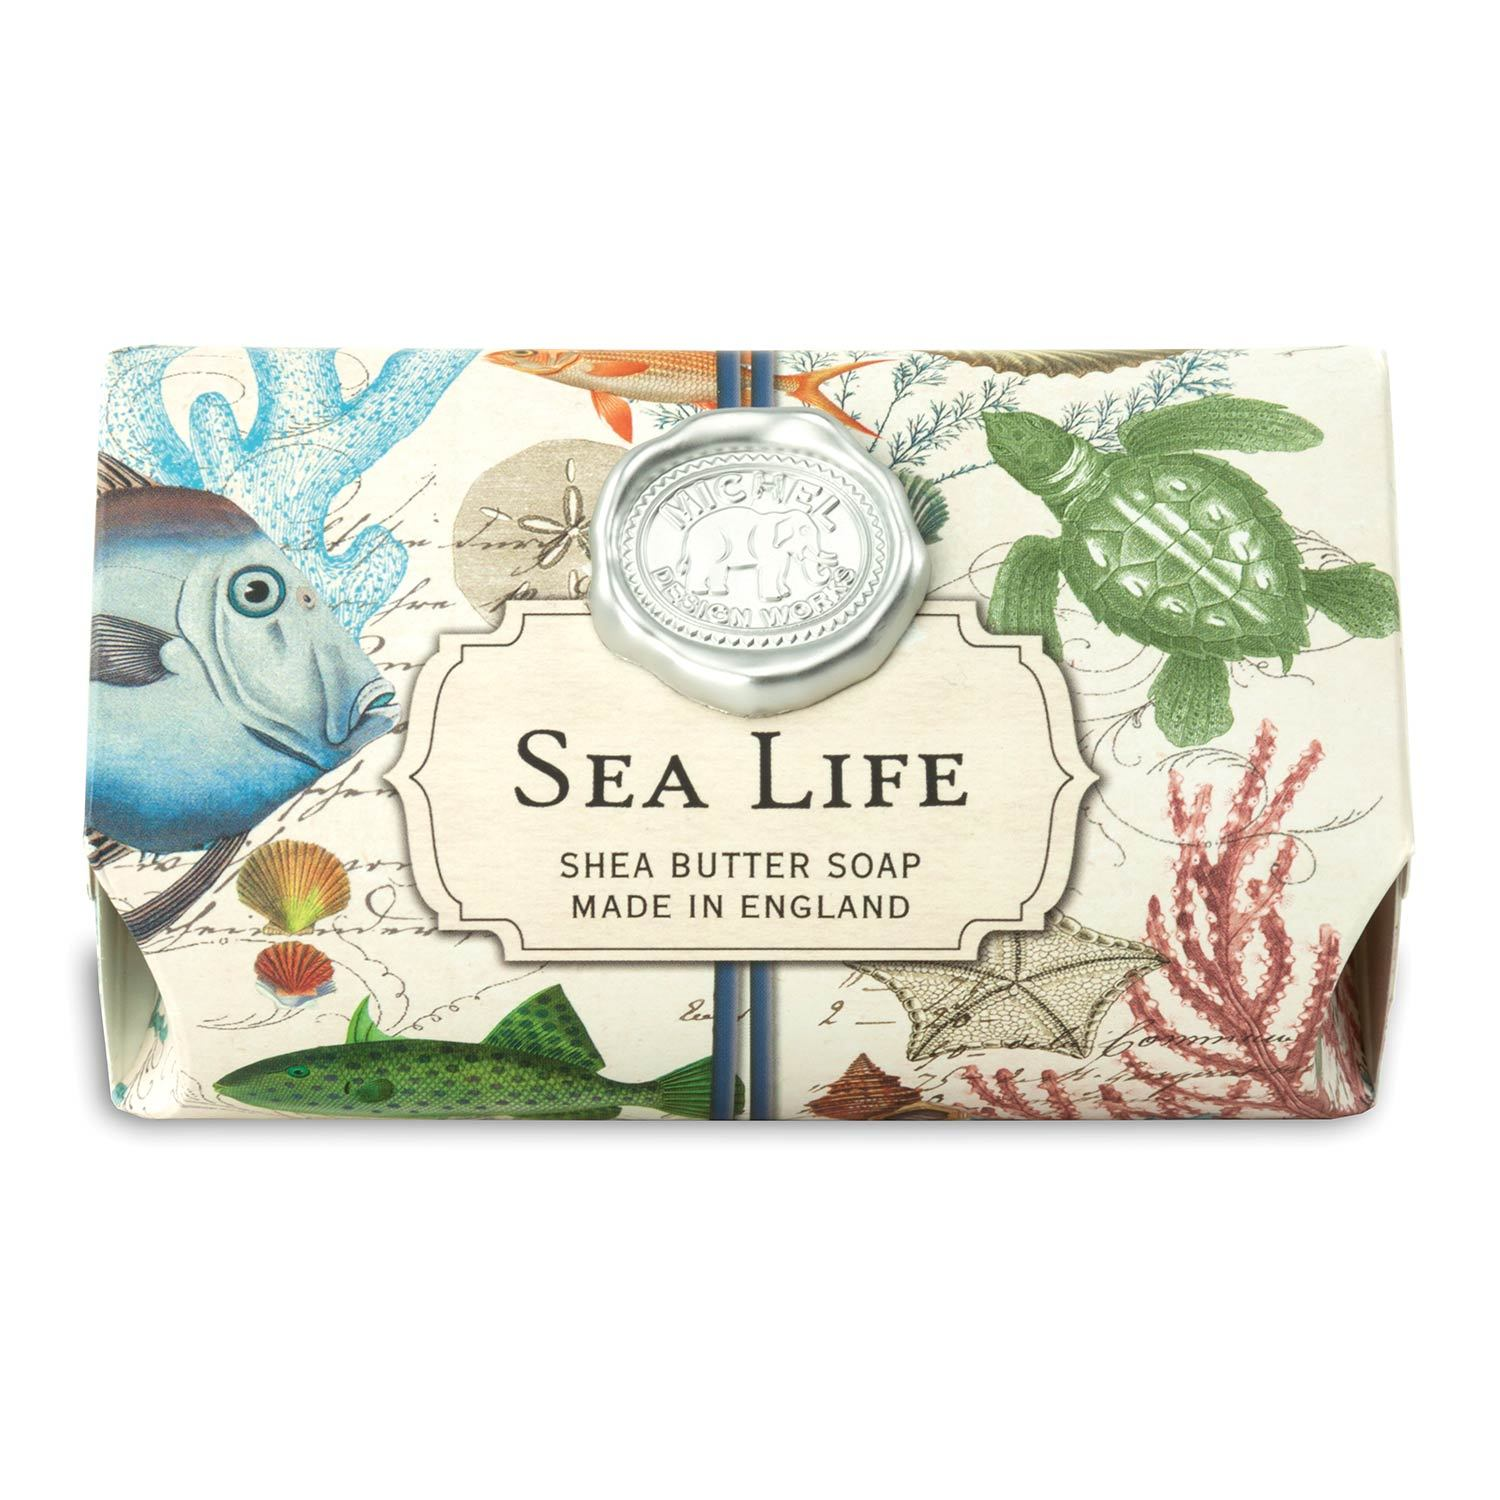 SEA LIFE SOAP - Molly's! A Chic and Unique Boutique